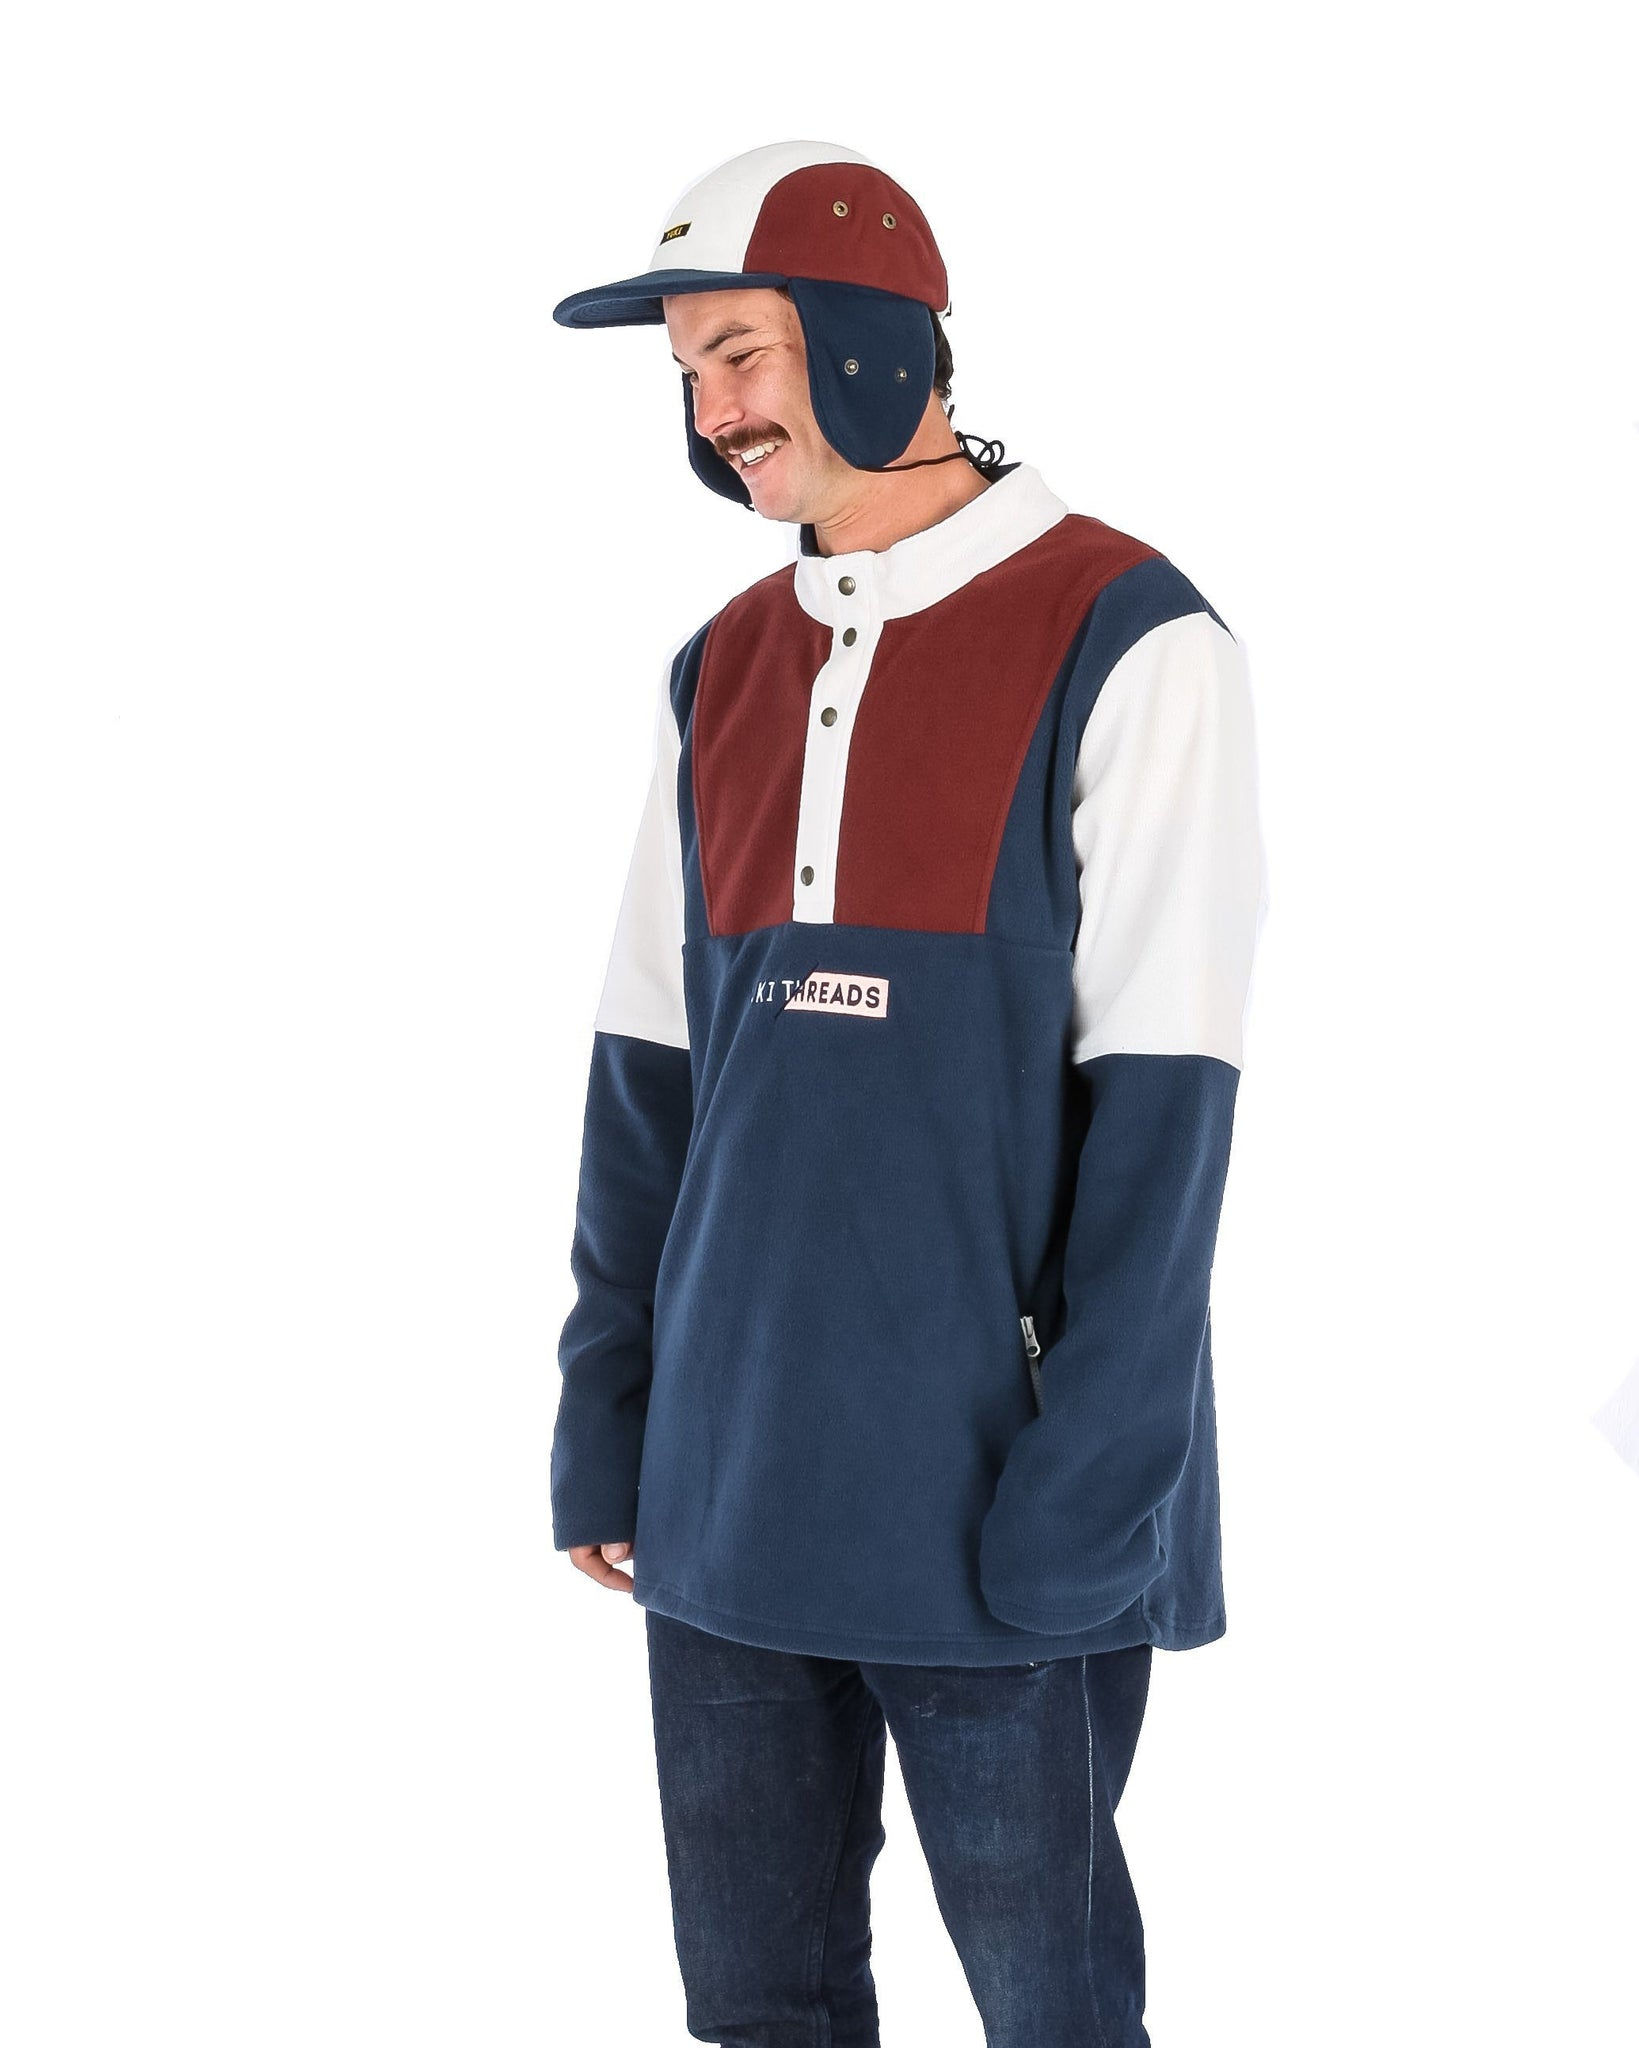 FRESH PRINCE FLEECE NAVY / MAROON / OFF WHITE - Yuki Threads